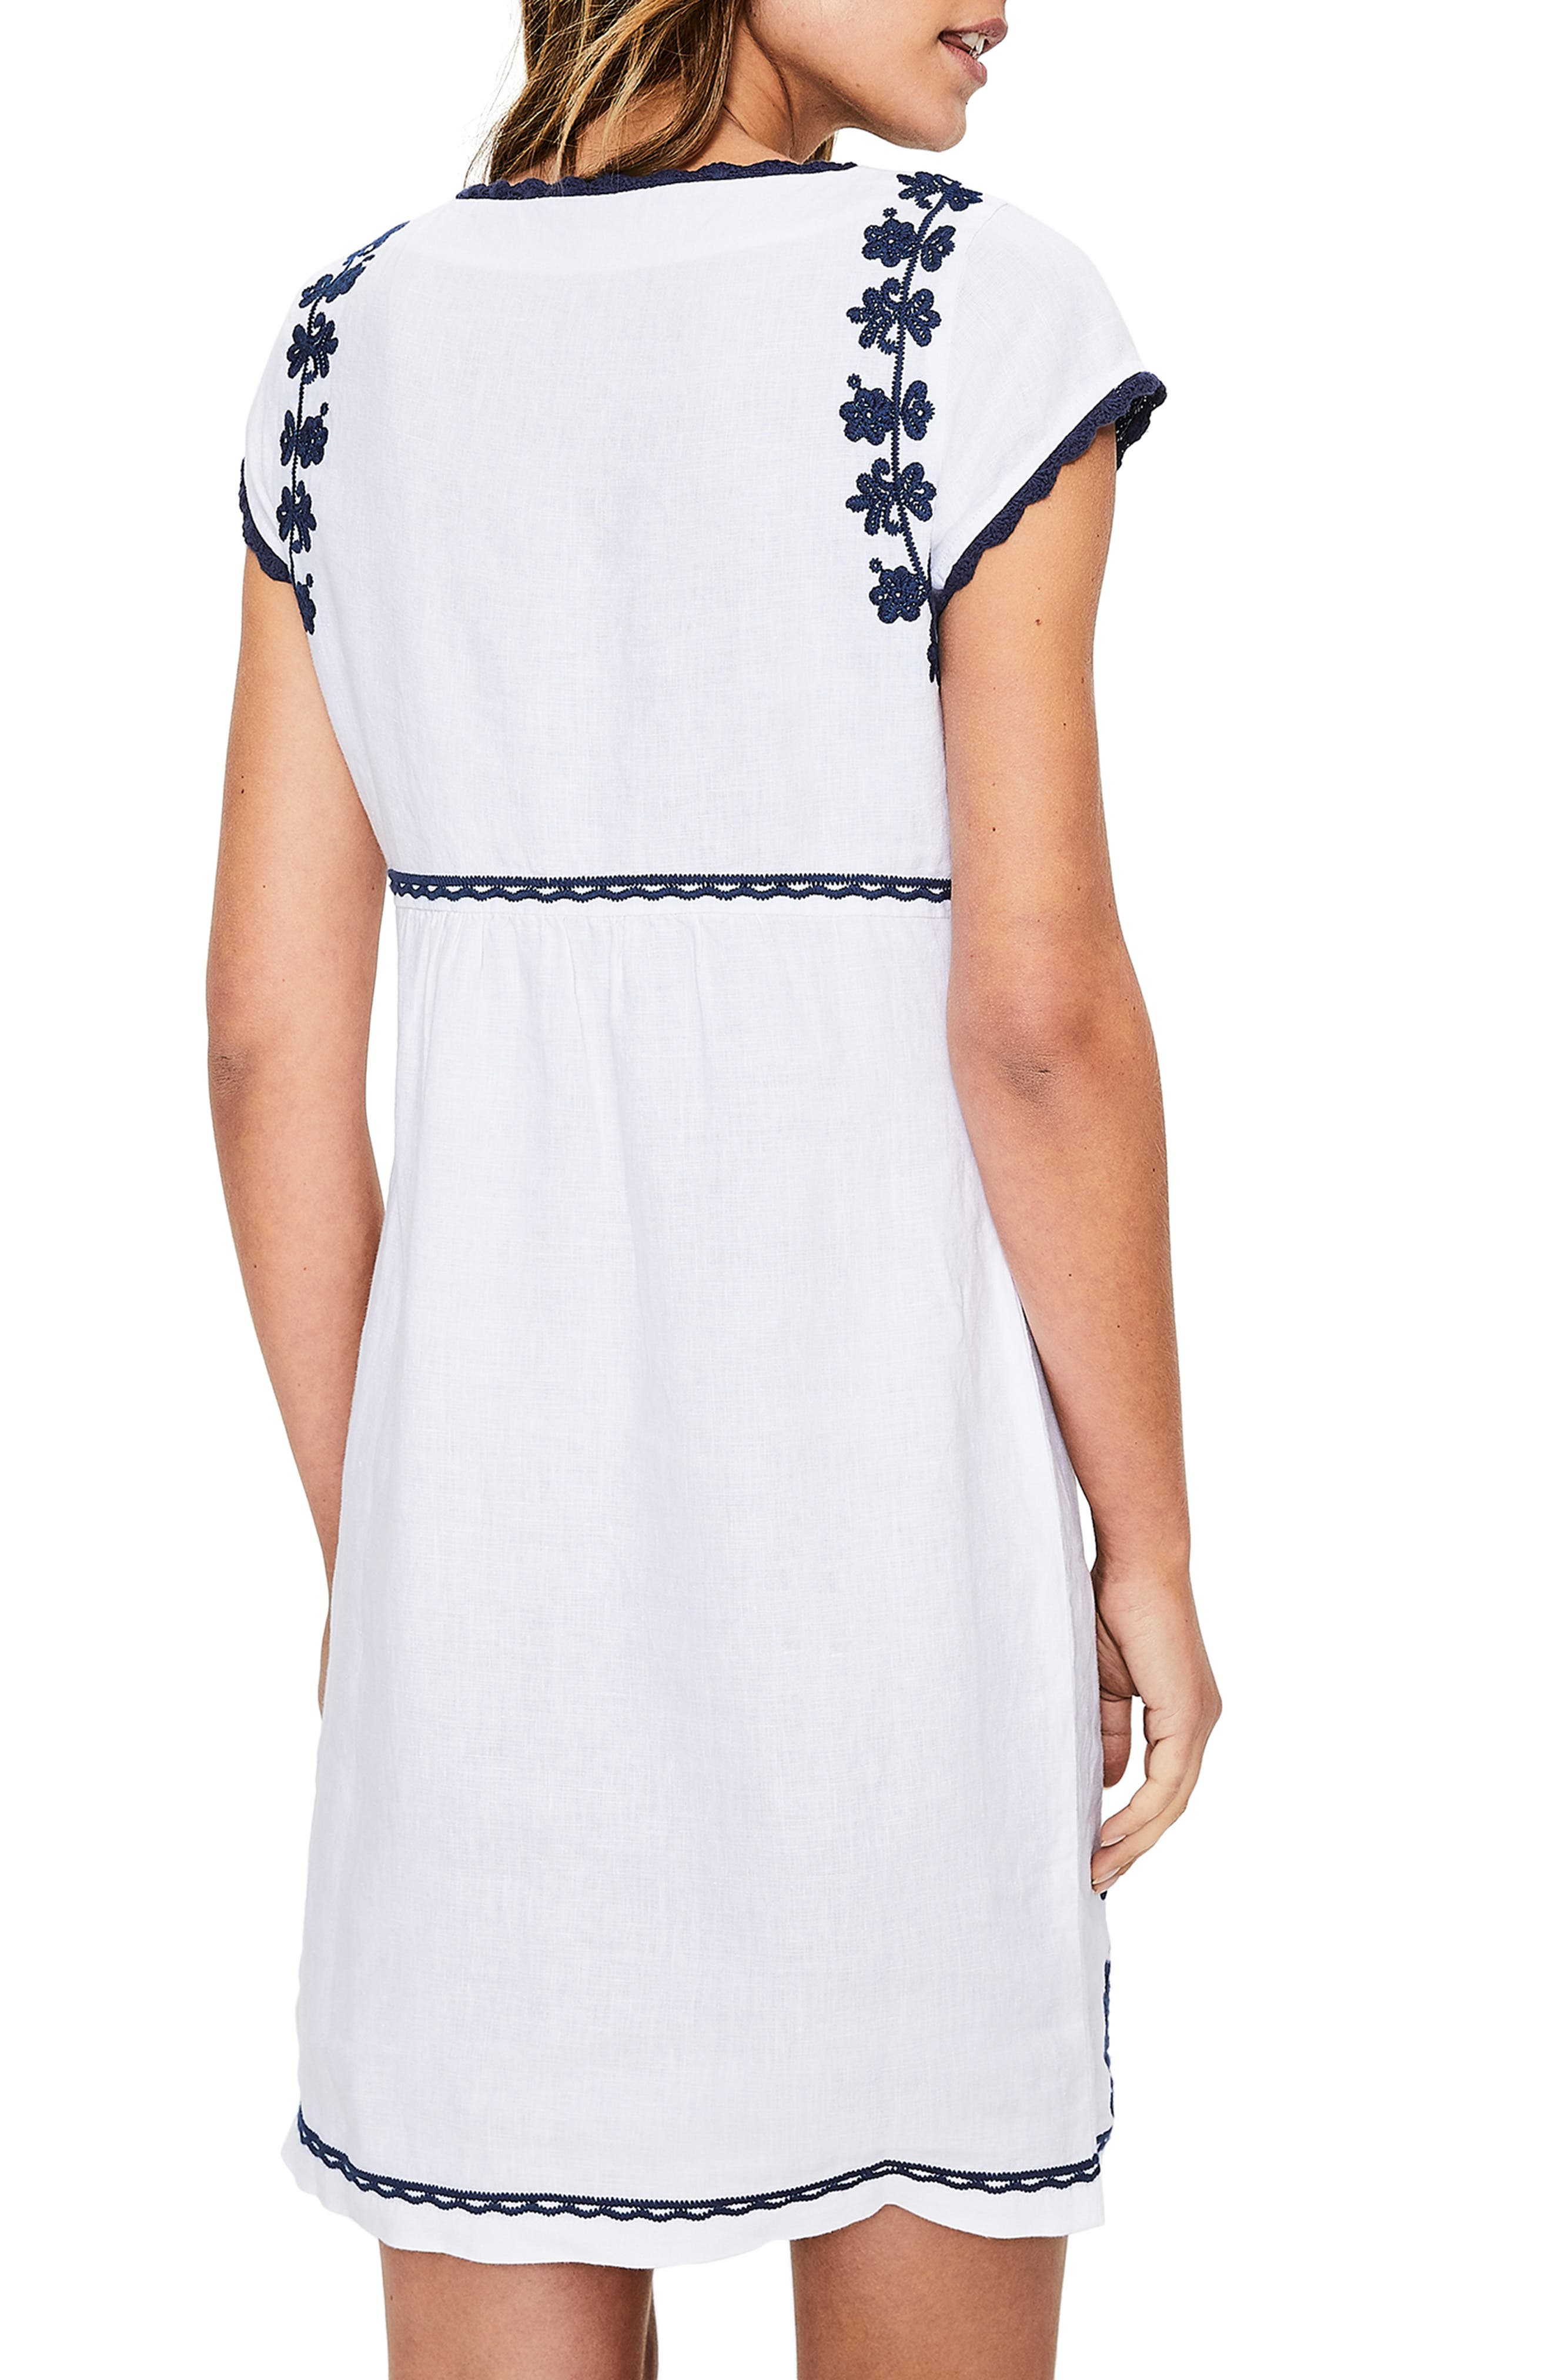 Notched Neck Embroidered Shift Dress,                             Alternate thumbnail 2, color,                             WHITE AND BLUE EMBROIDERY